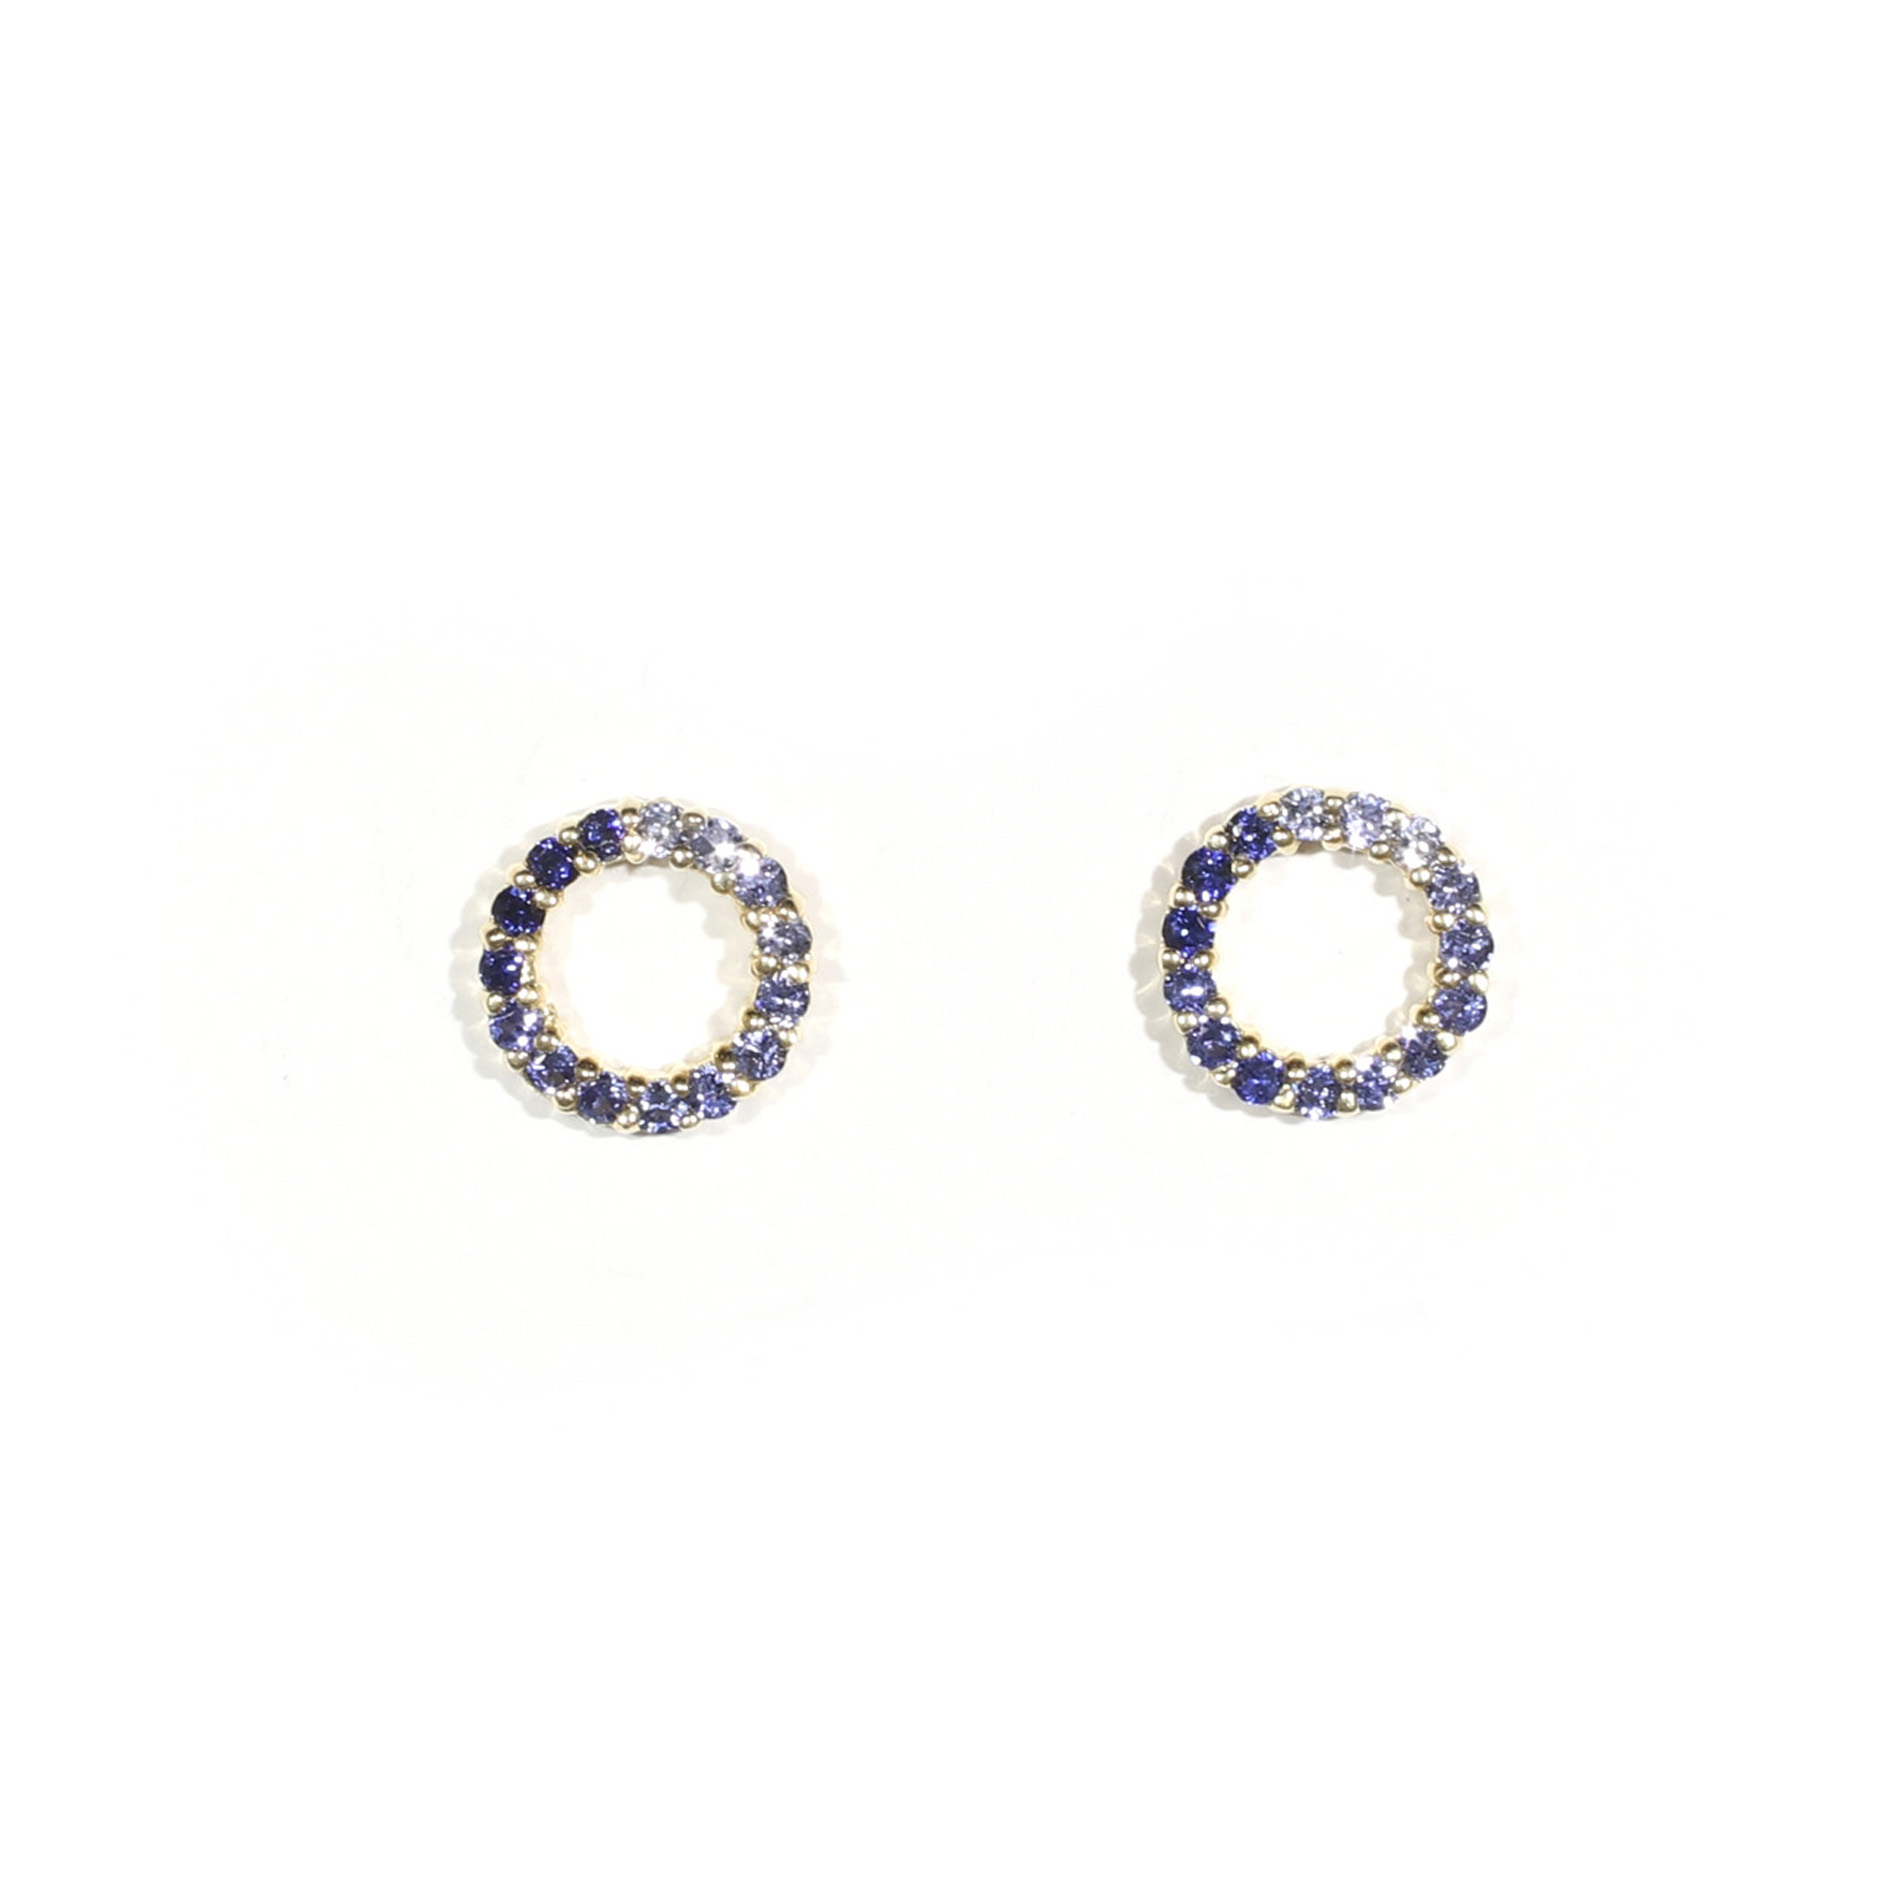 blush wwake products c sapphire doublecirclepinksapphireearring circle earrings double